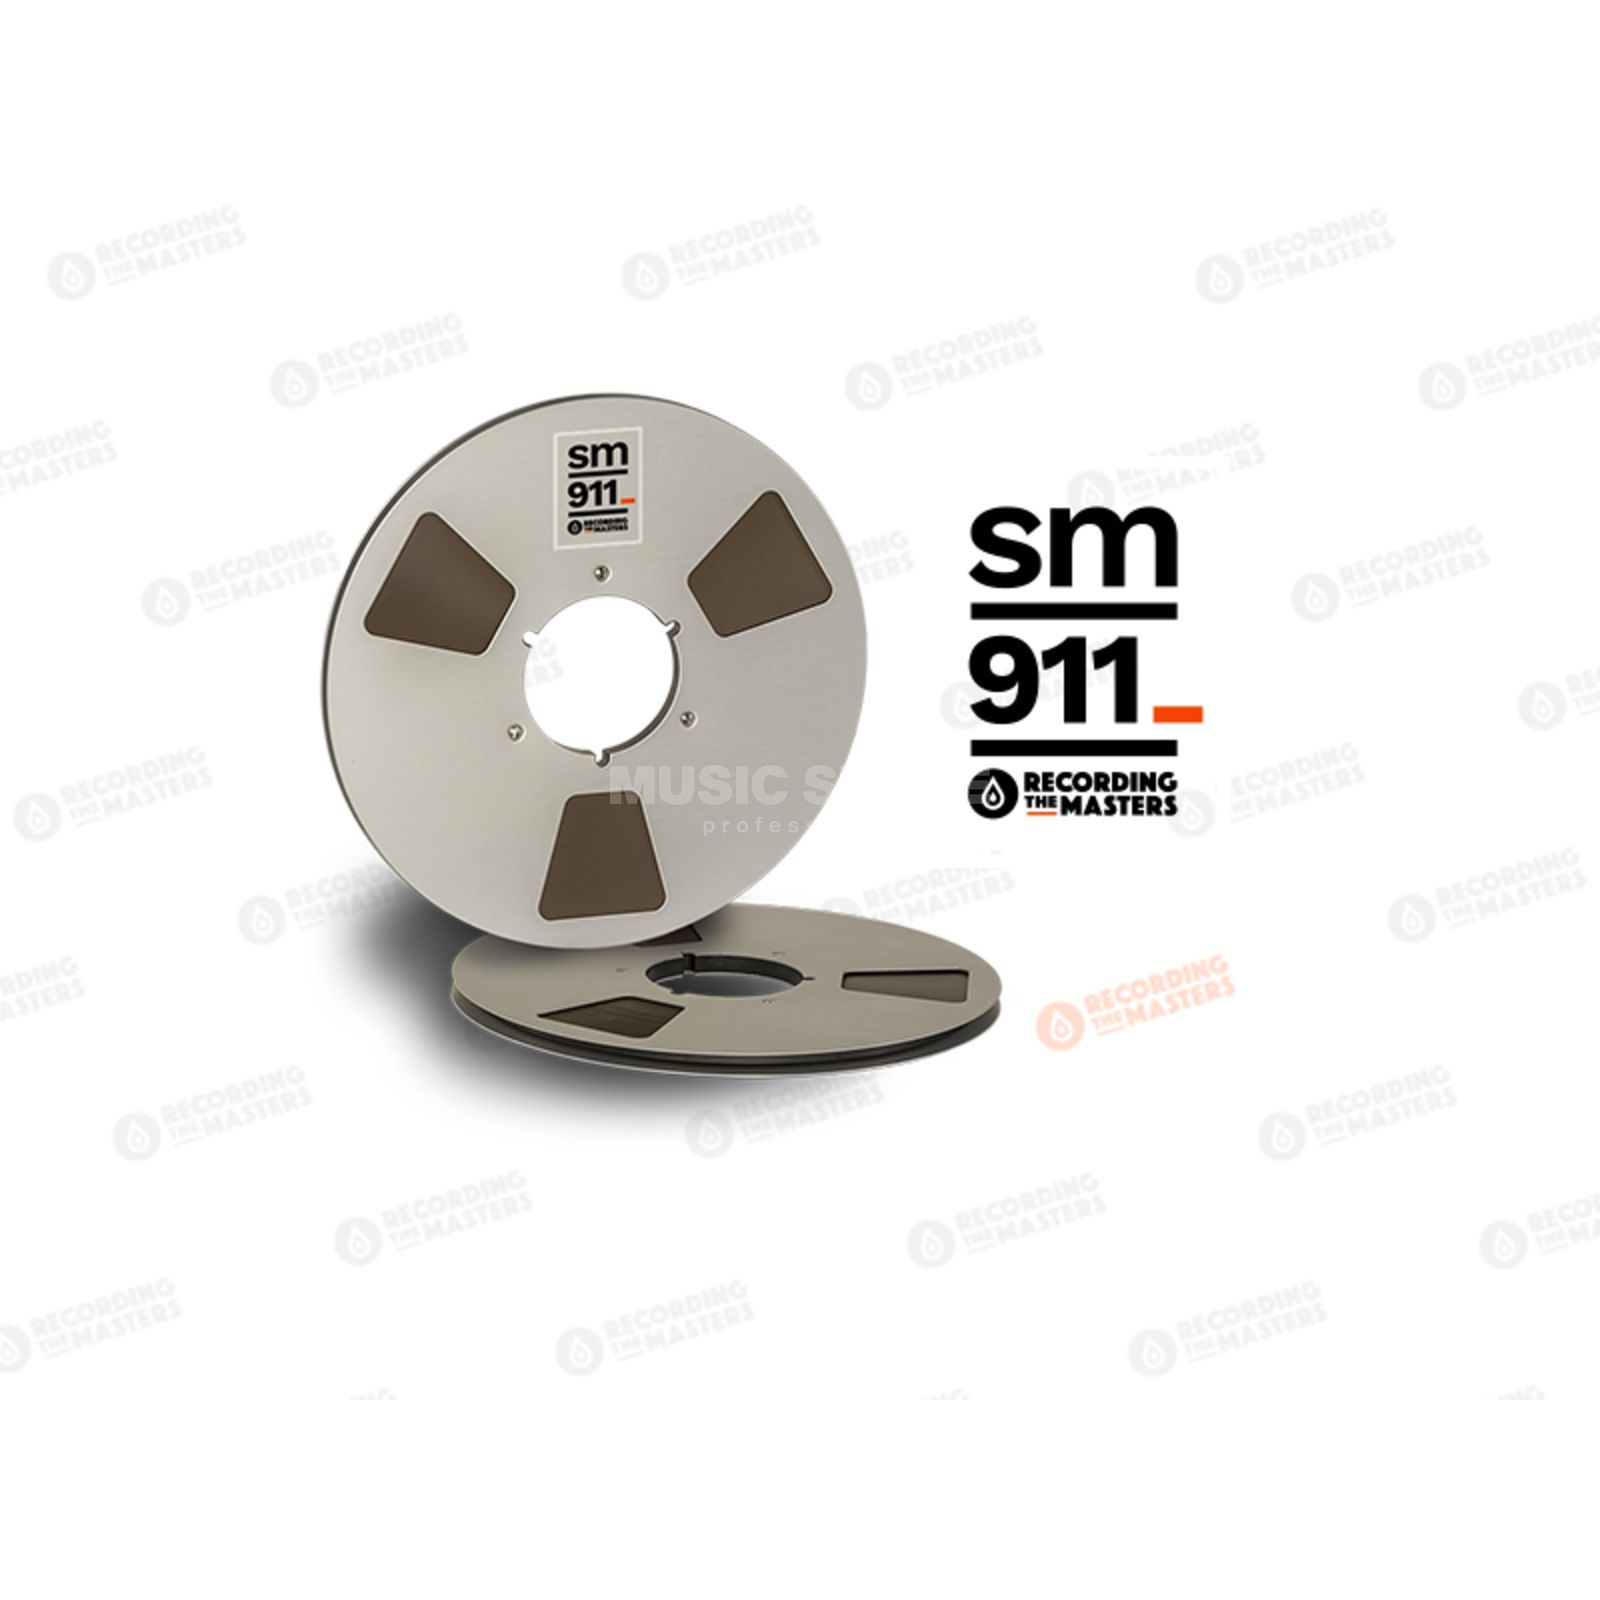 "Recording The Masters SM911 1/4"" 762m Analog Band NAB-Core /Metal Reel 27cm Product Image"